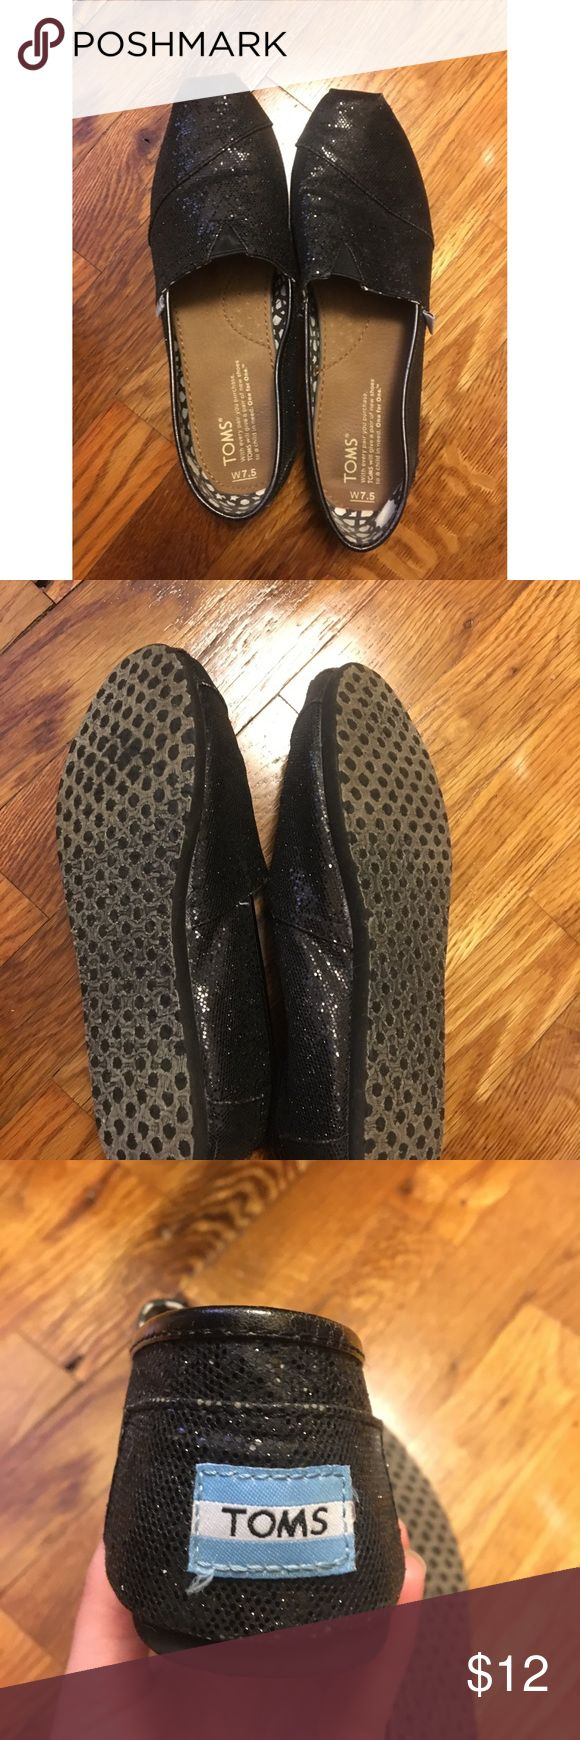 Black Glitter Toms Size 7.5 Toms Black Glitter Flats in size 7.5. Excellent condition. Toms Shoes Flats & Loafers